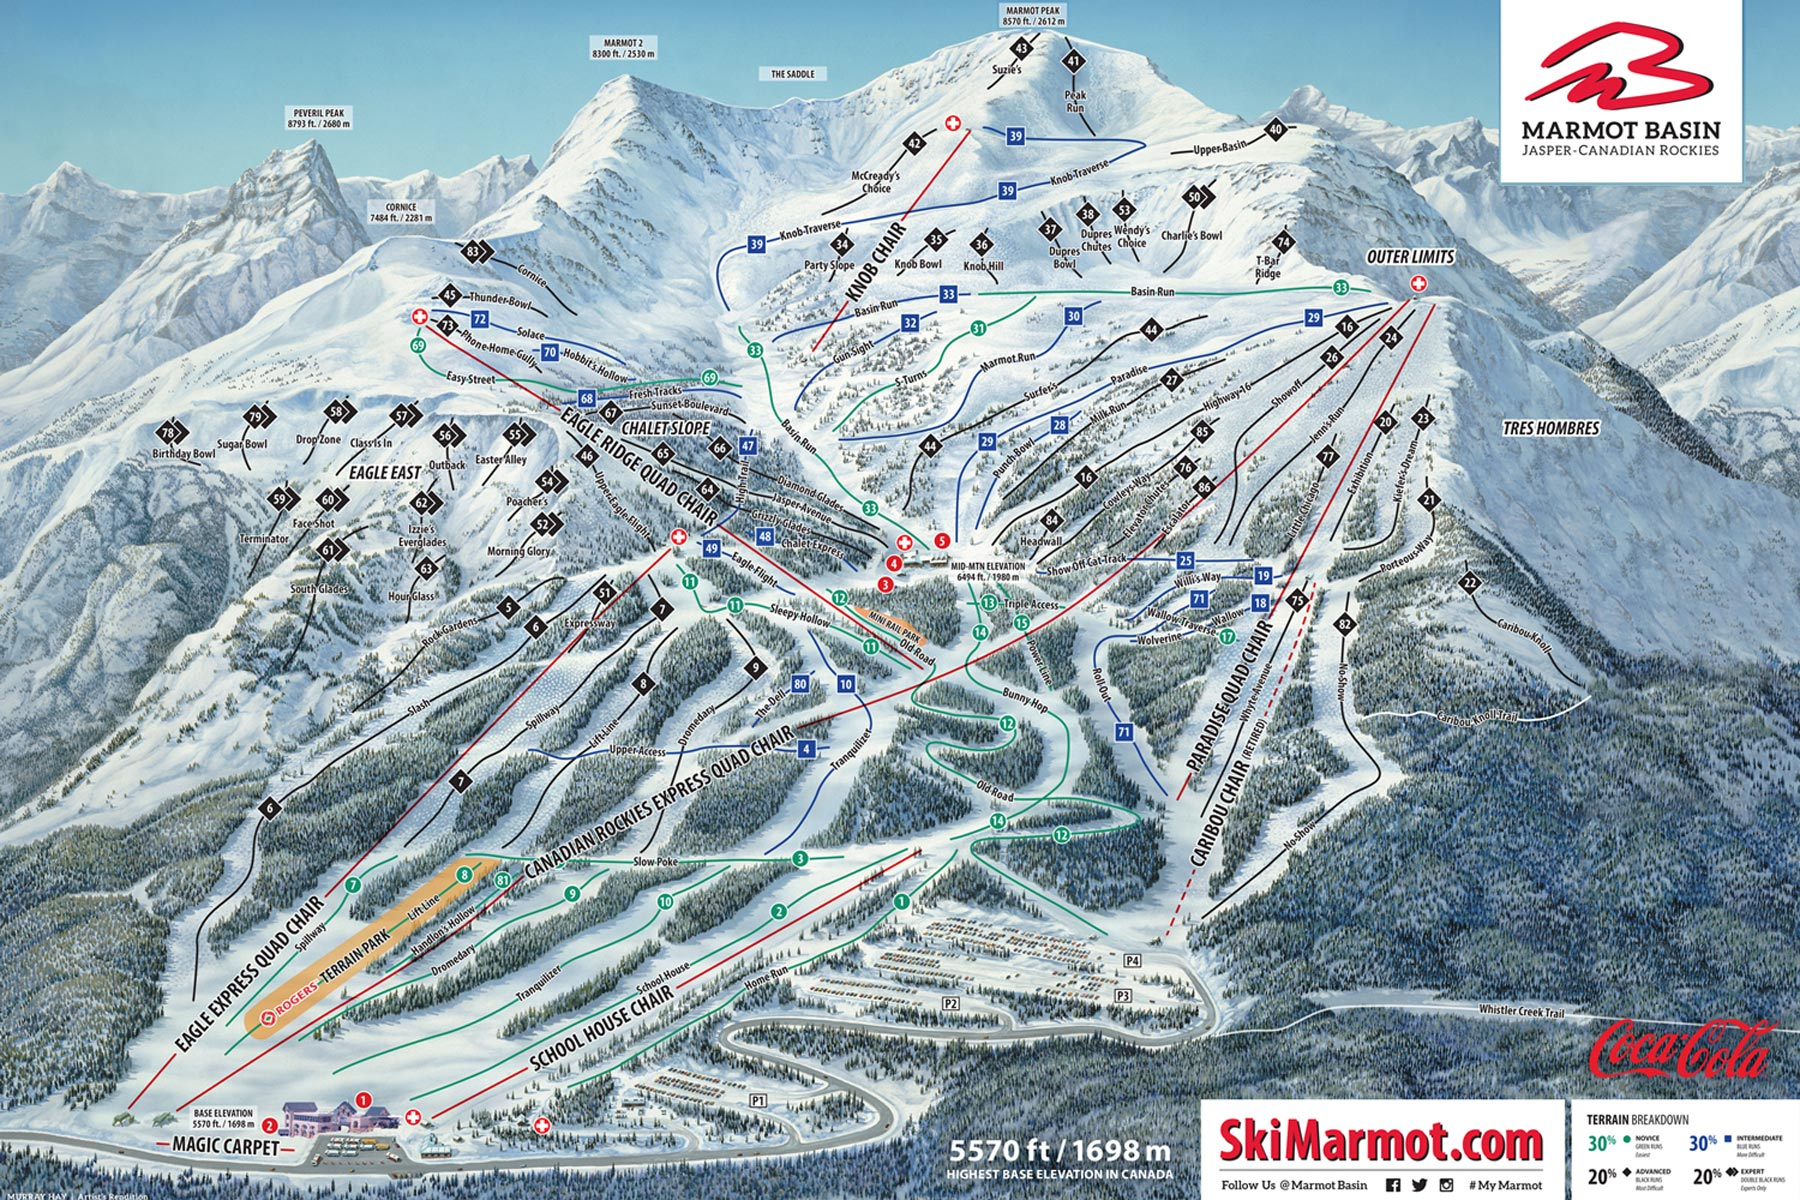 New routes opened for 321ski trips to Canada - literally!